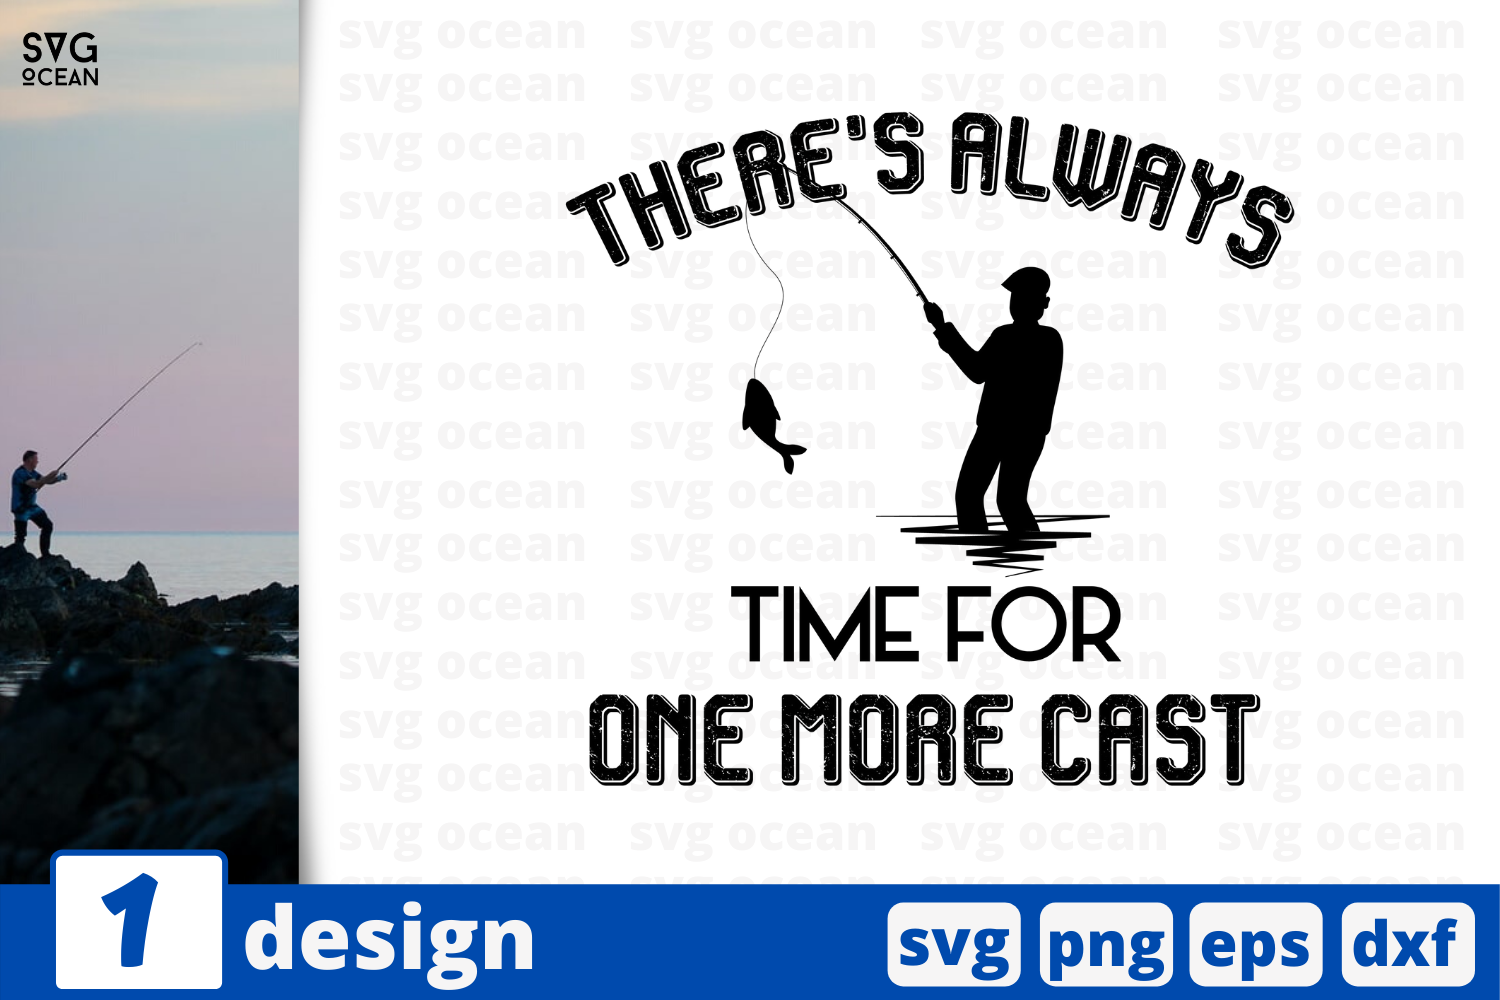 Download Free There S Always Time For One More Cast Graphic By Svgocean for Cricut Explore, Silhouette and other cutting machines.